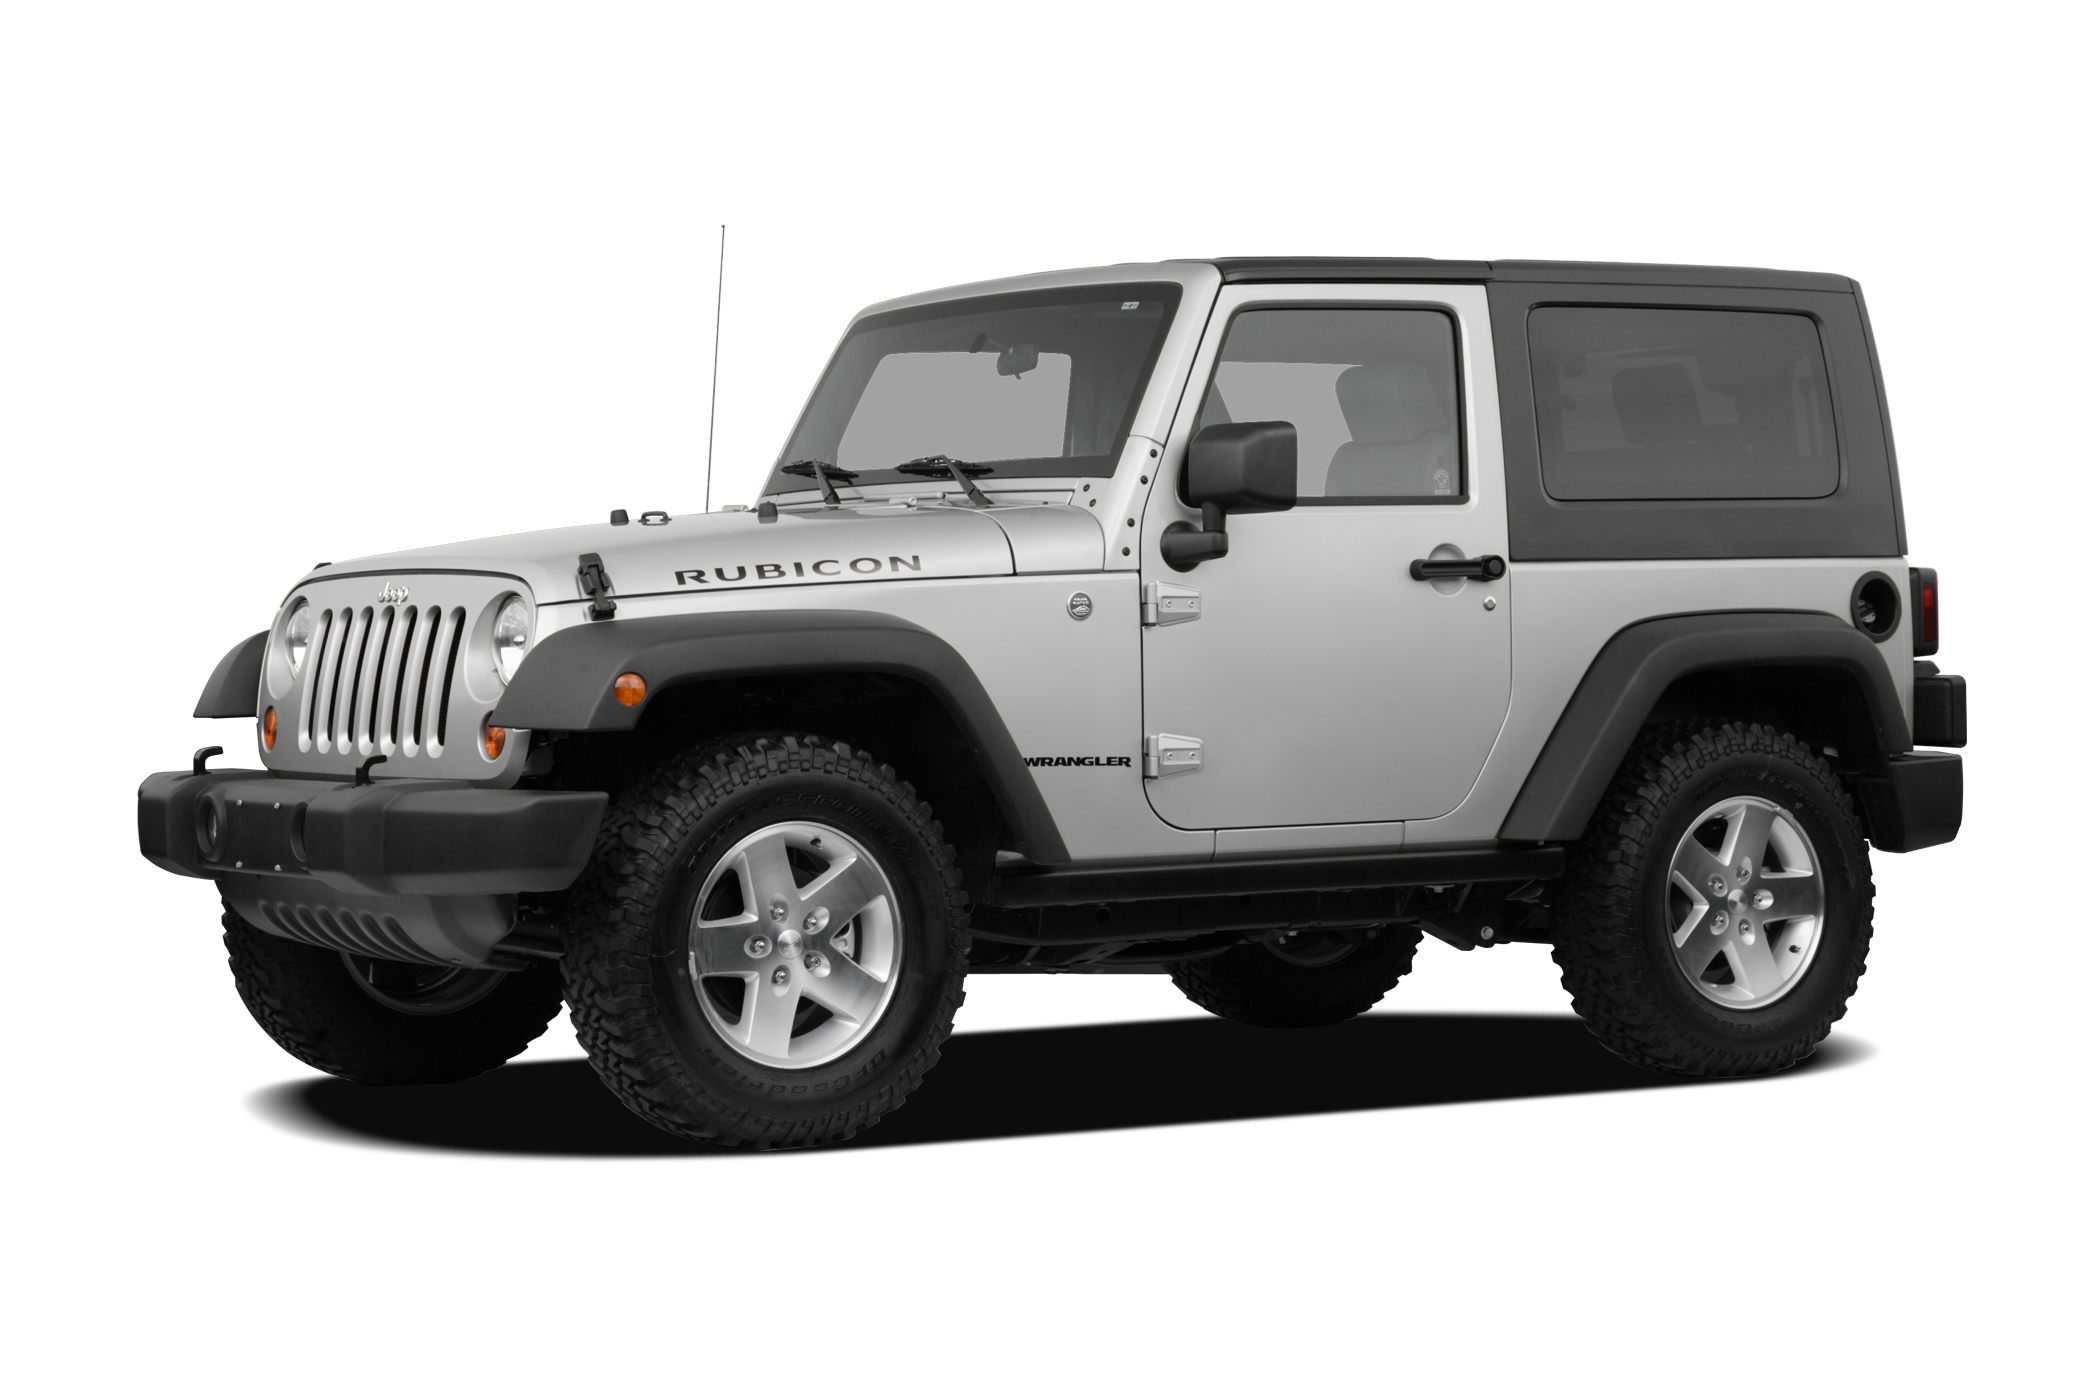 2009 Jeep Wrangler X SUV for sale in Johnson City for $17,999 with 84,713 miles.